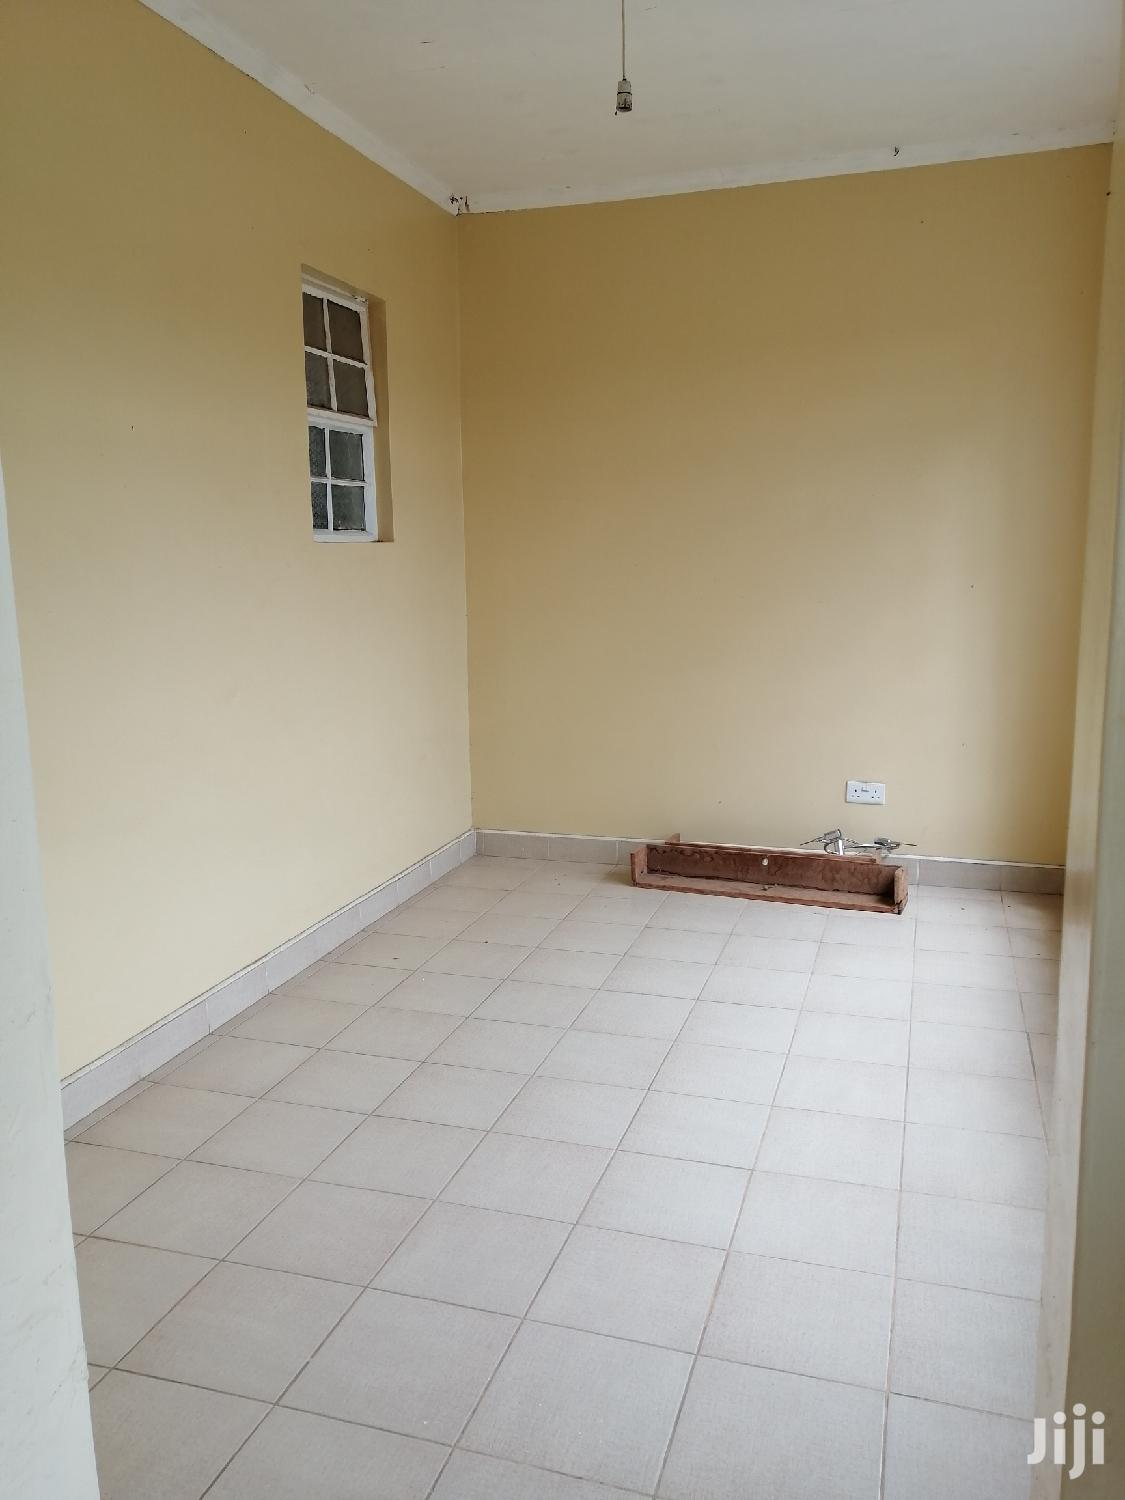 Used House For Sale.... 7bedroomed House